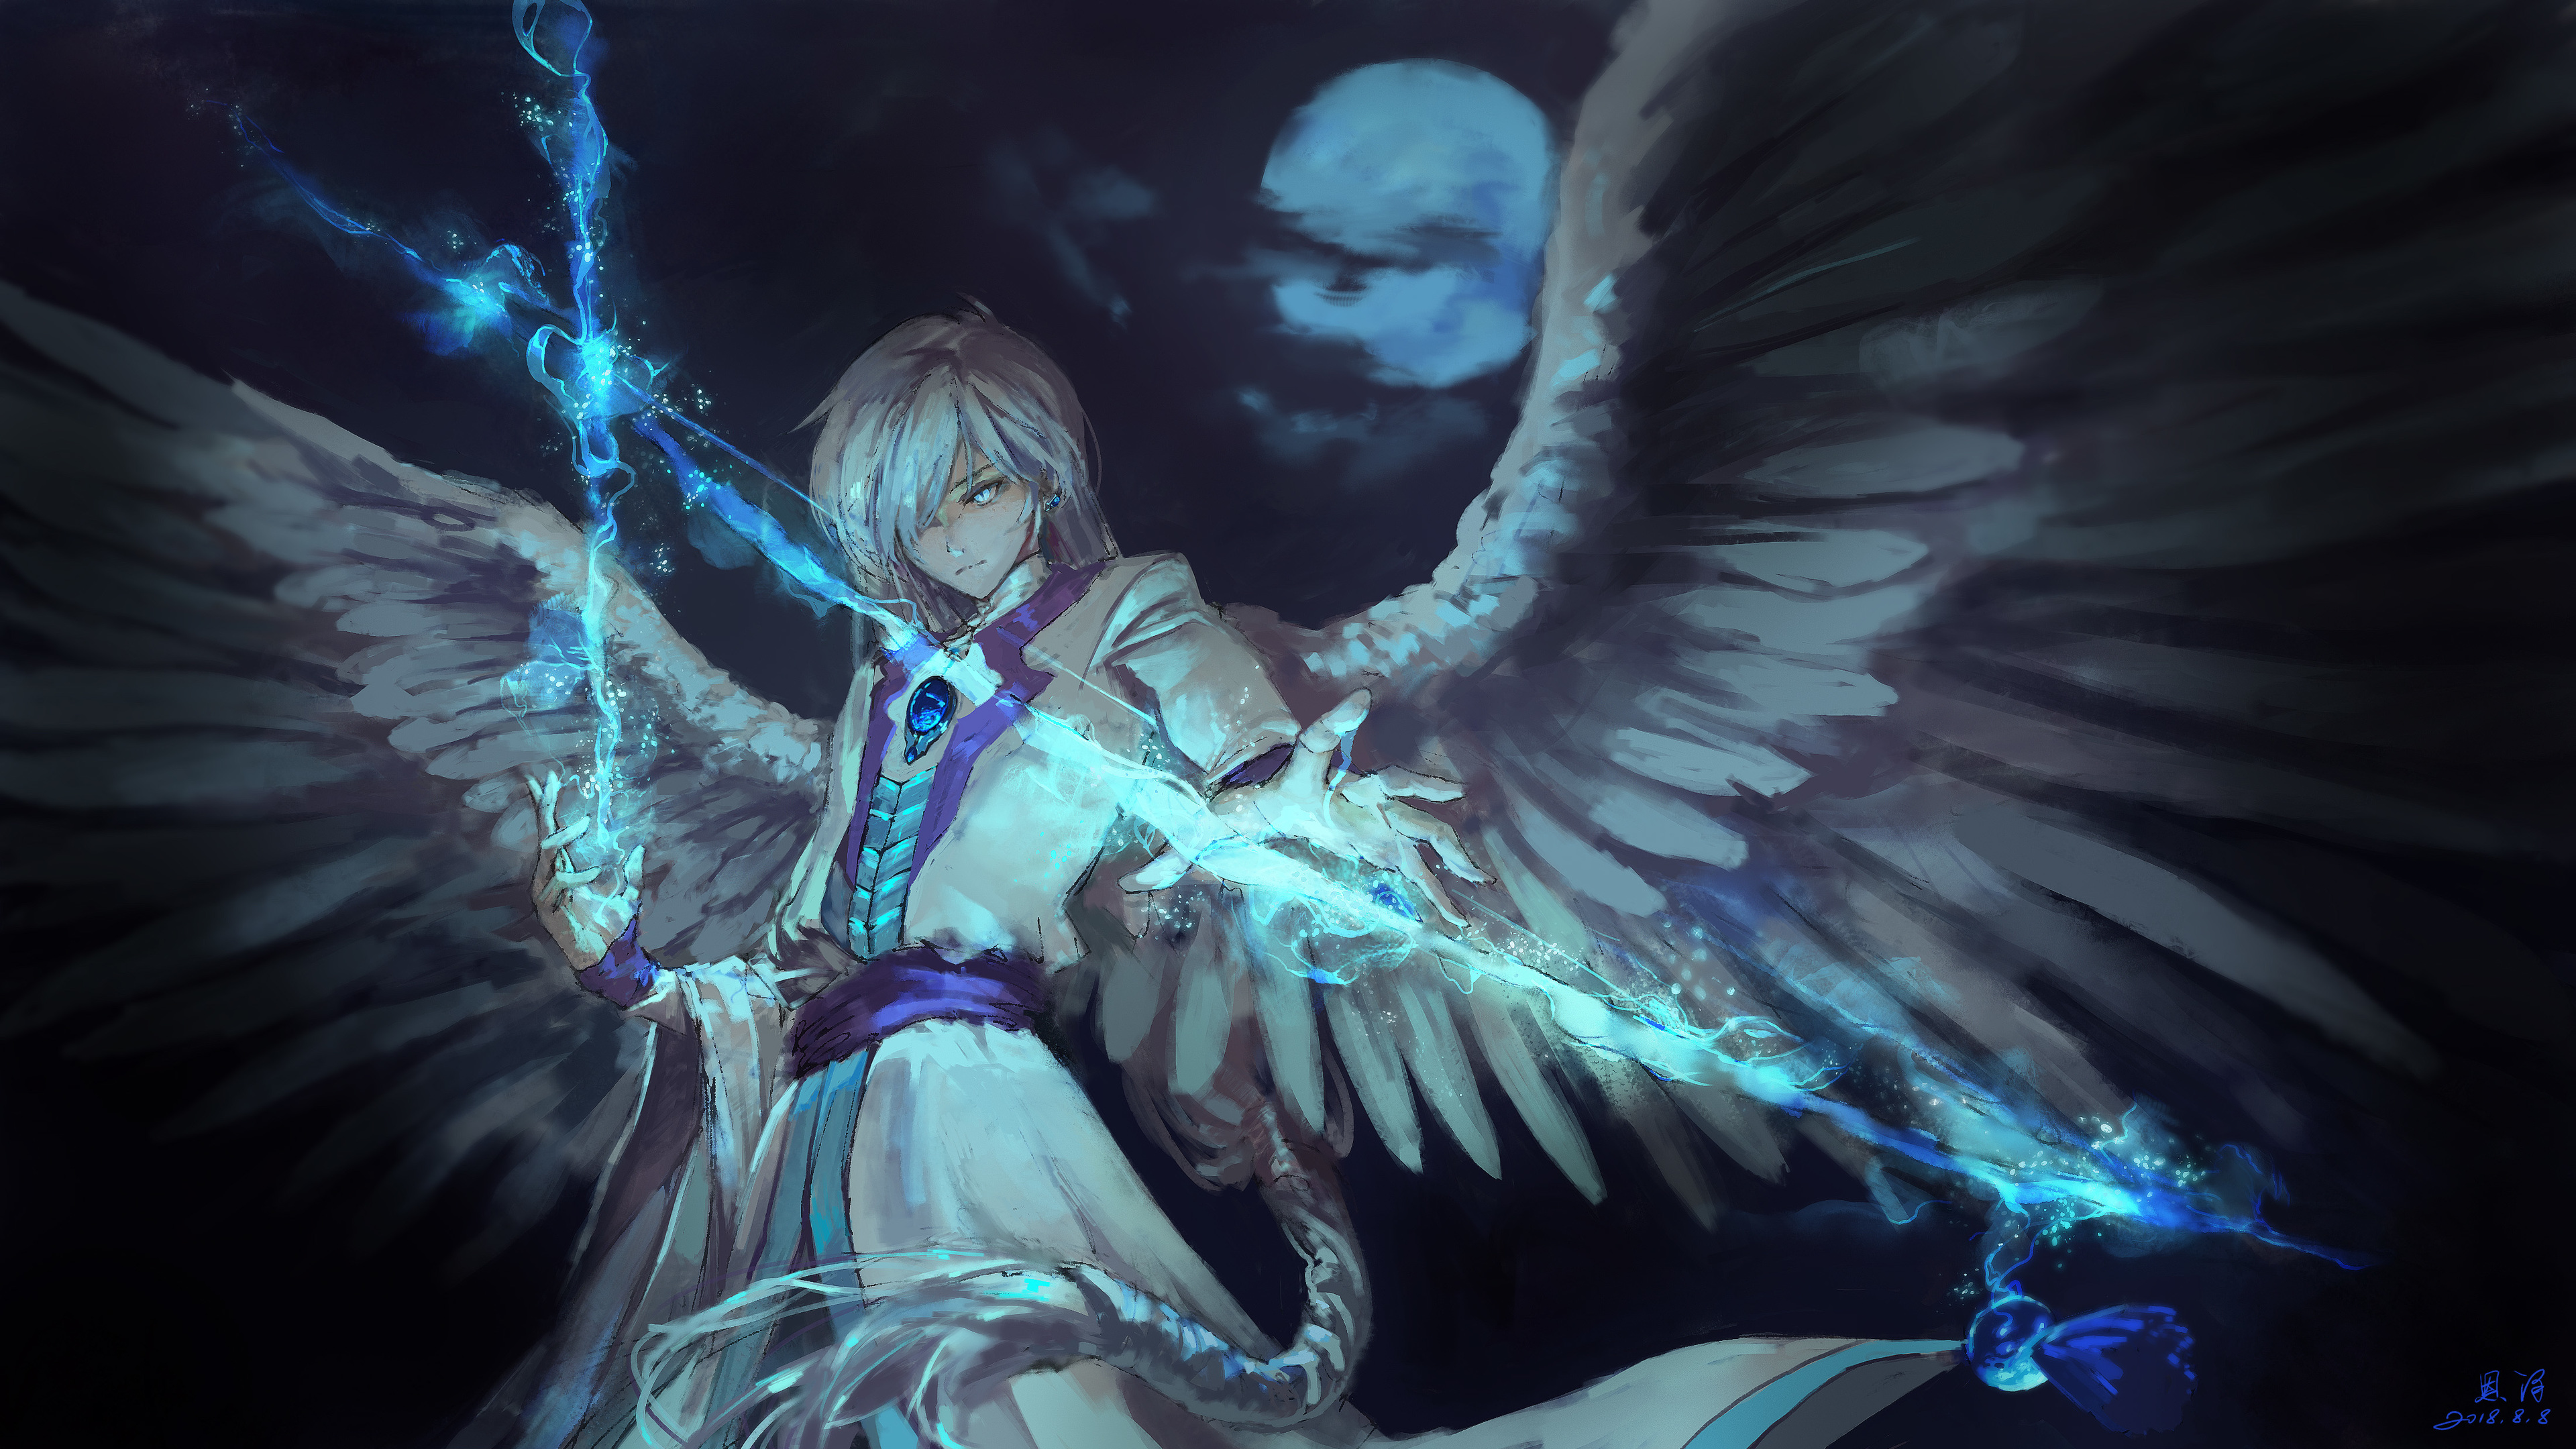 Wallpaper 4k Anime Angel Boy With Magical Arrow 4k Wallpapers Anime Wallpapers Hd Wallpapers